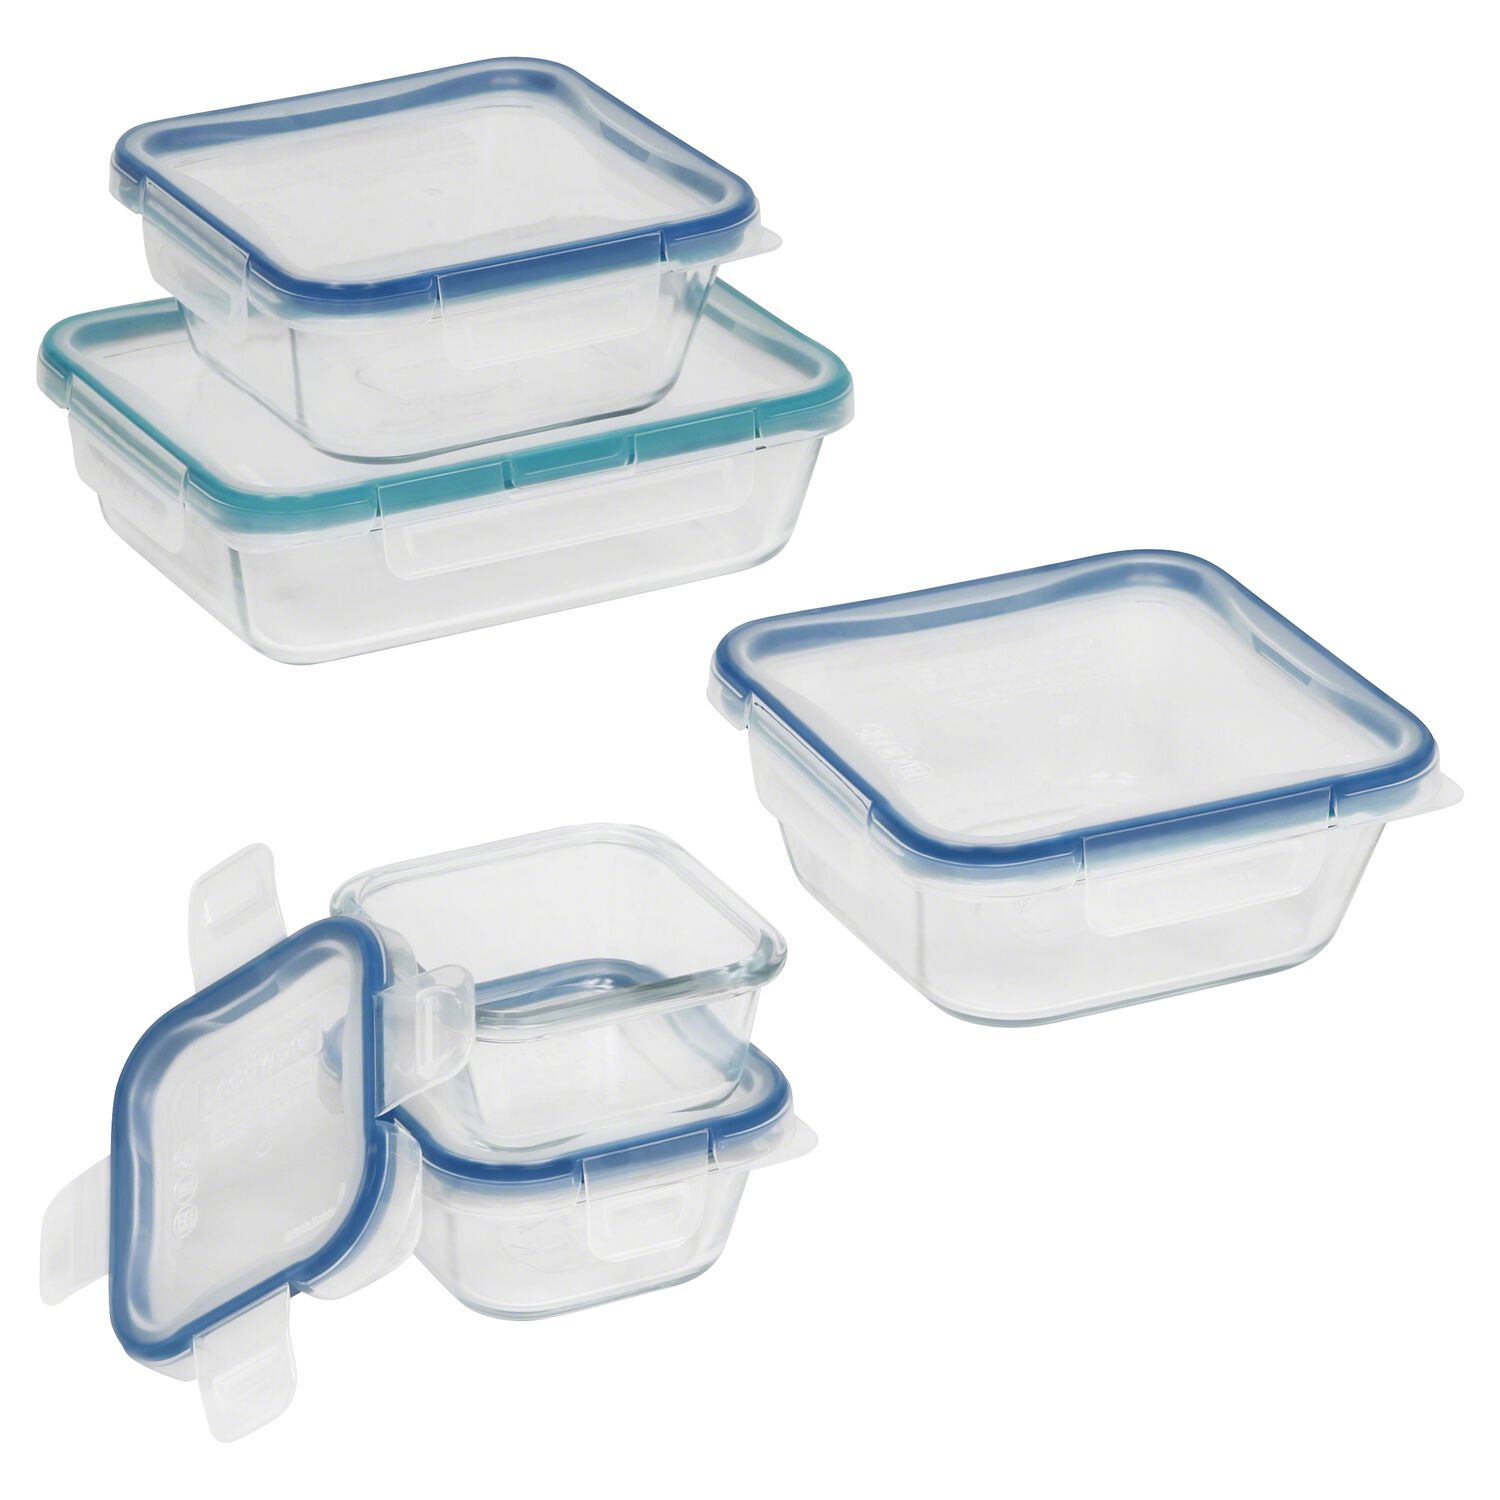 Snapware 174 Total Solution Pyrex 174 Glass Food Storage 10 Pc